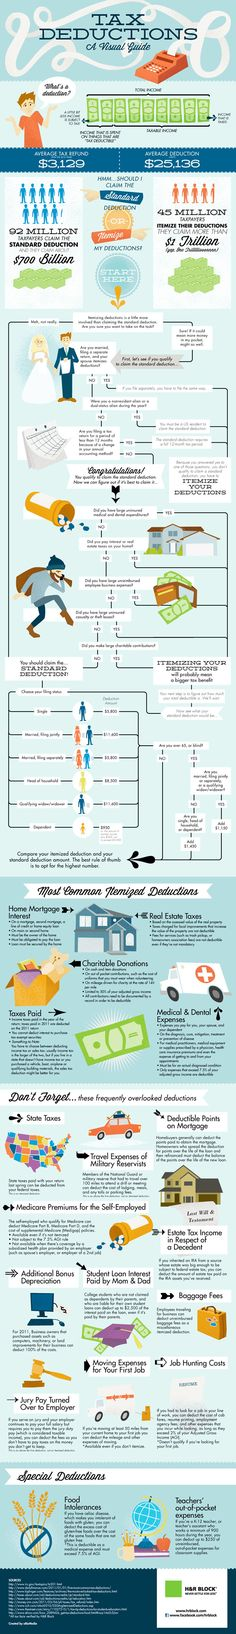 Bookkeeper Infographic Accountant Infographic Bookkeeper Vs